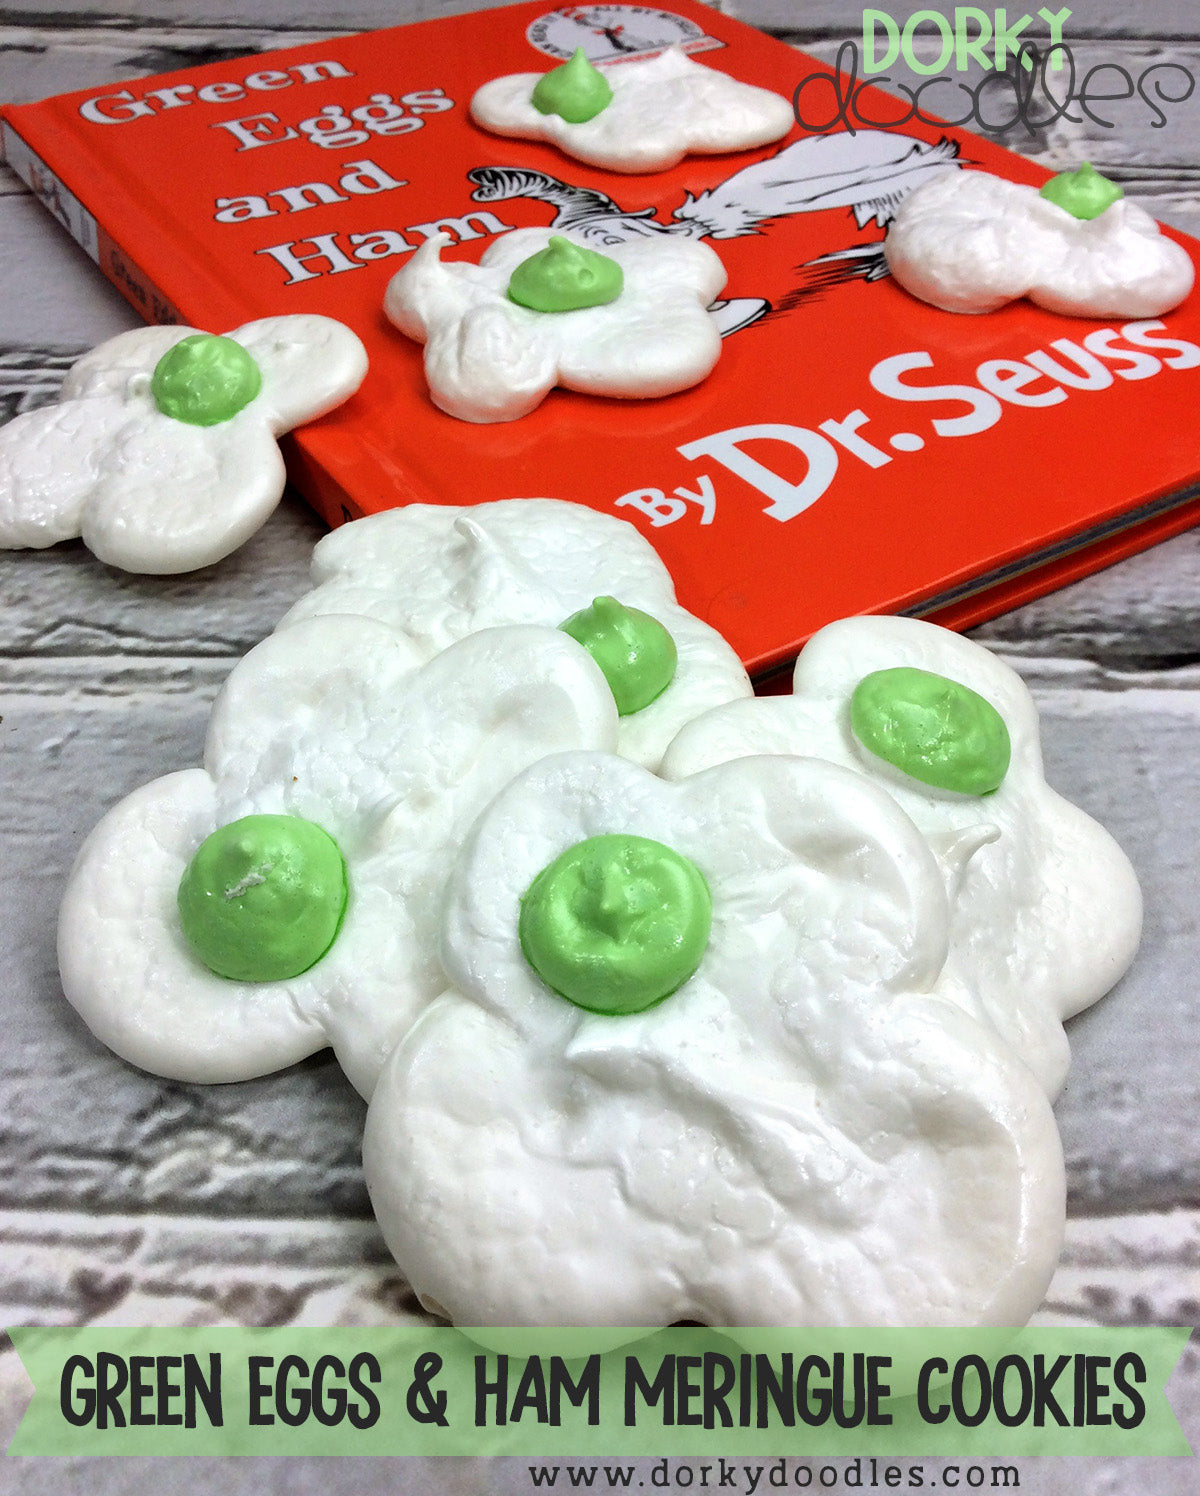 Dr Seuss Green Eggs and Ham Cookies Recipe